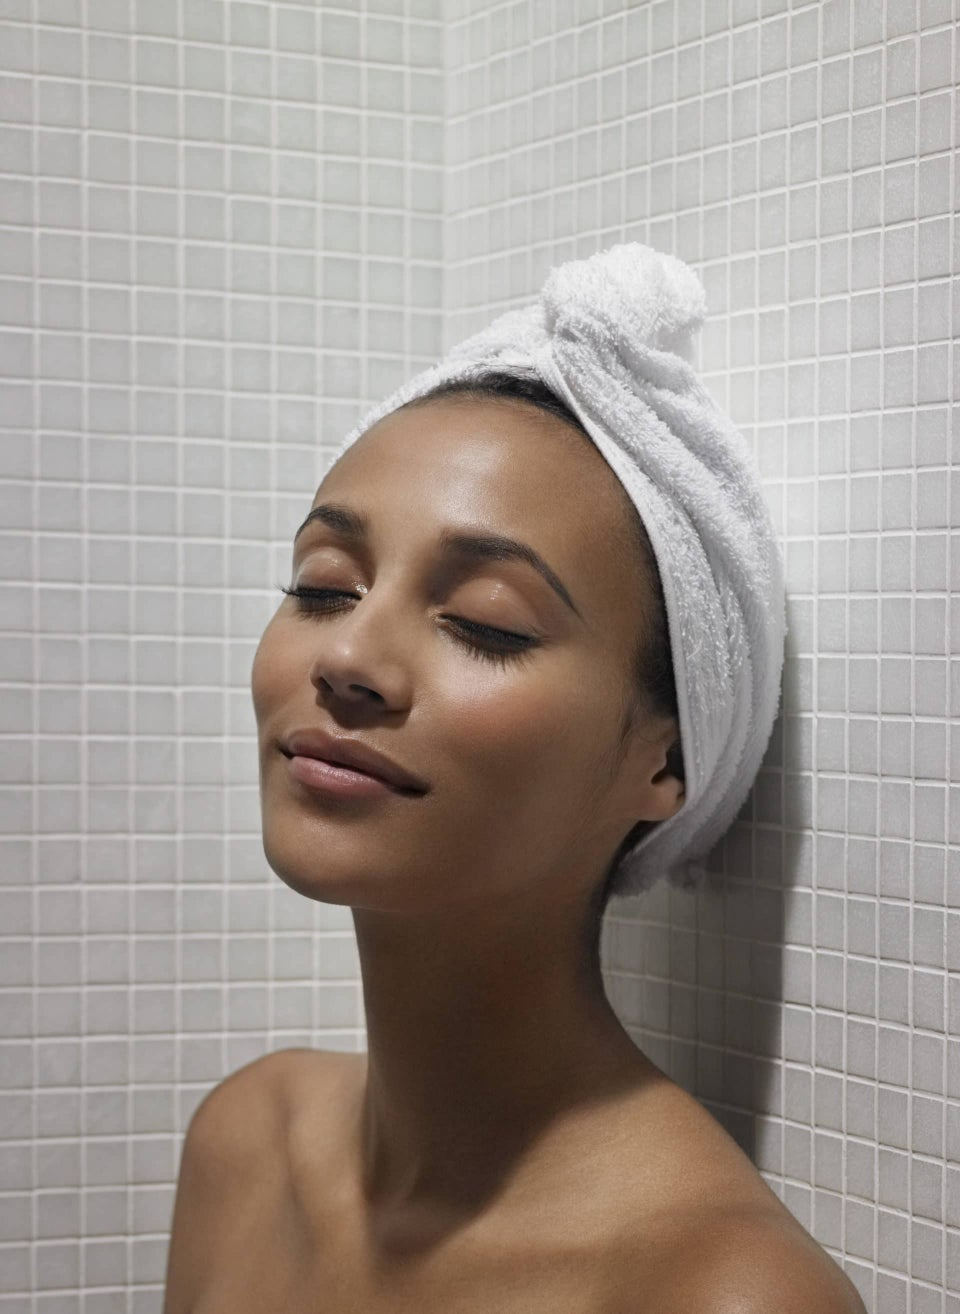 These Self-Care Gems Will Help You De-Compress After The Holidays